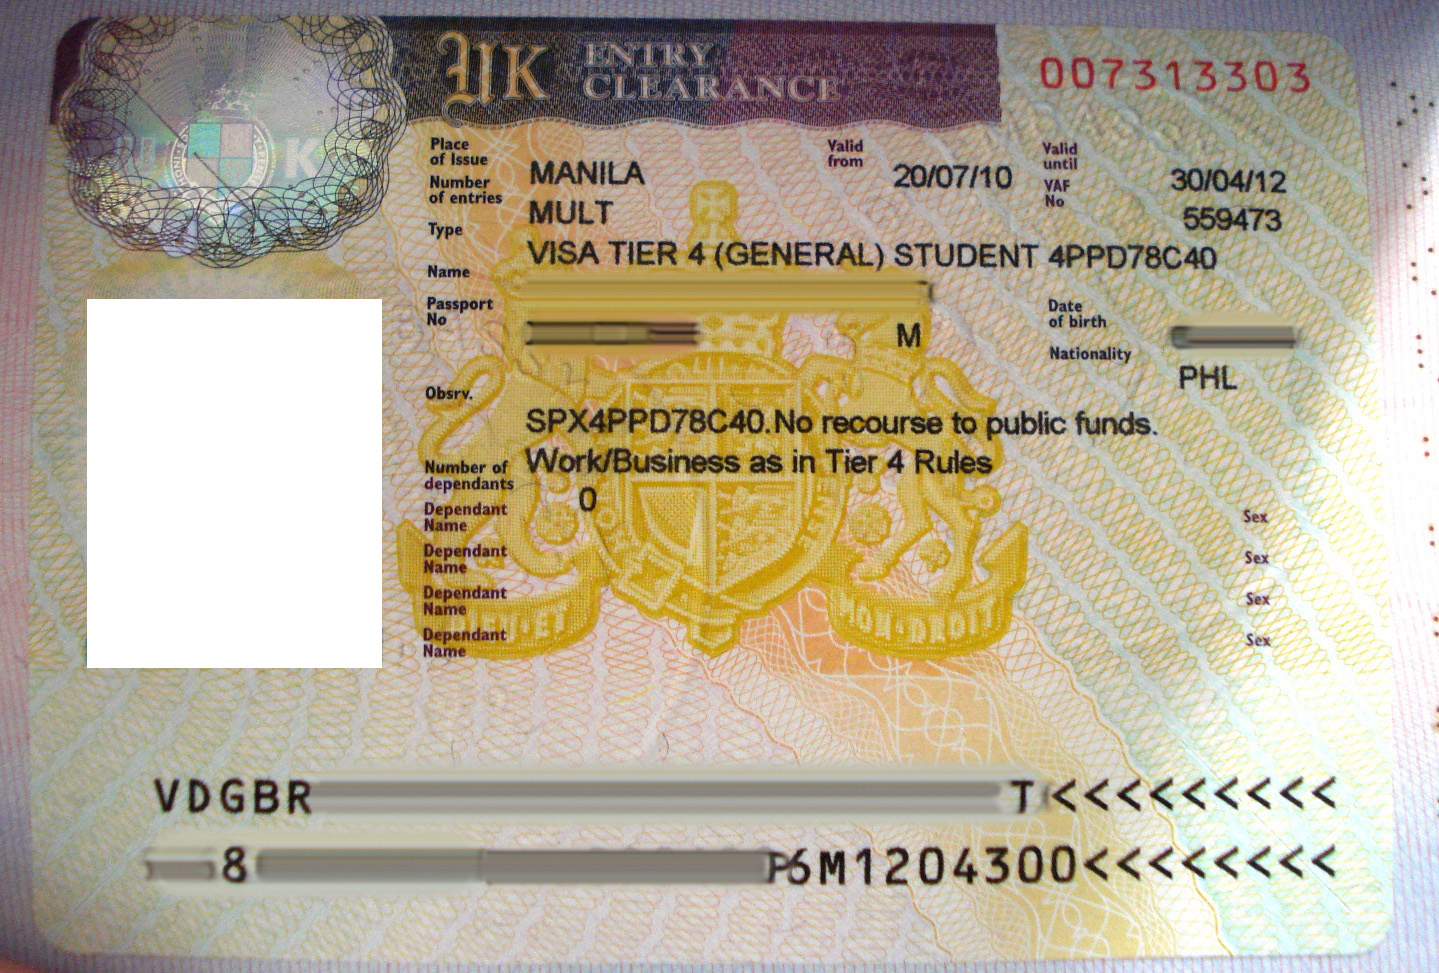 passport what does document number mean